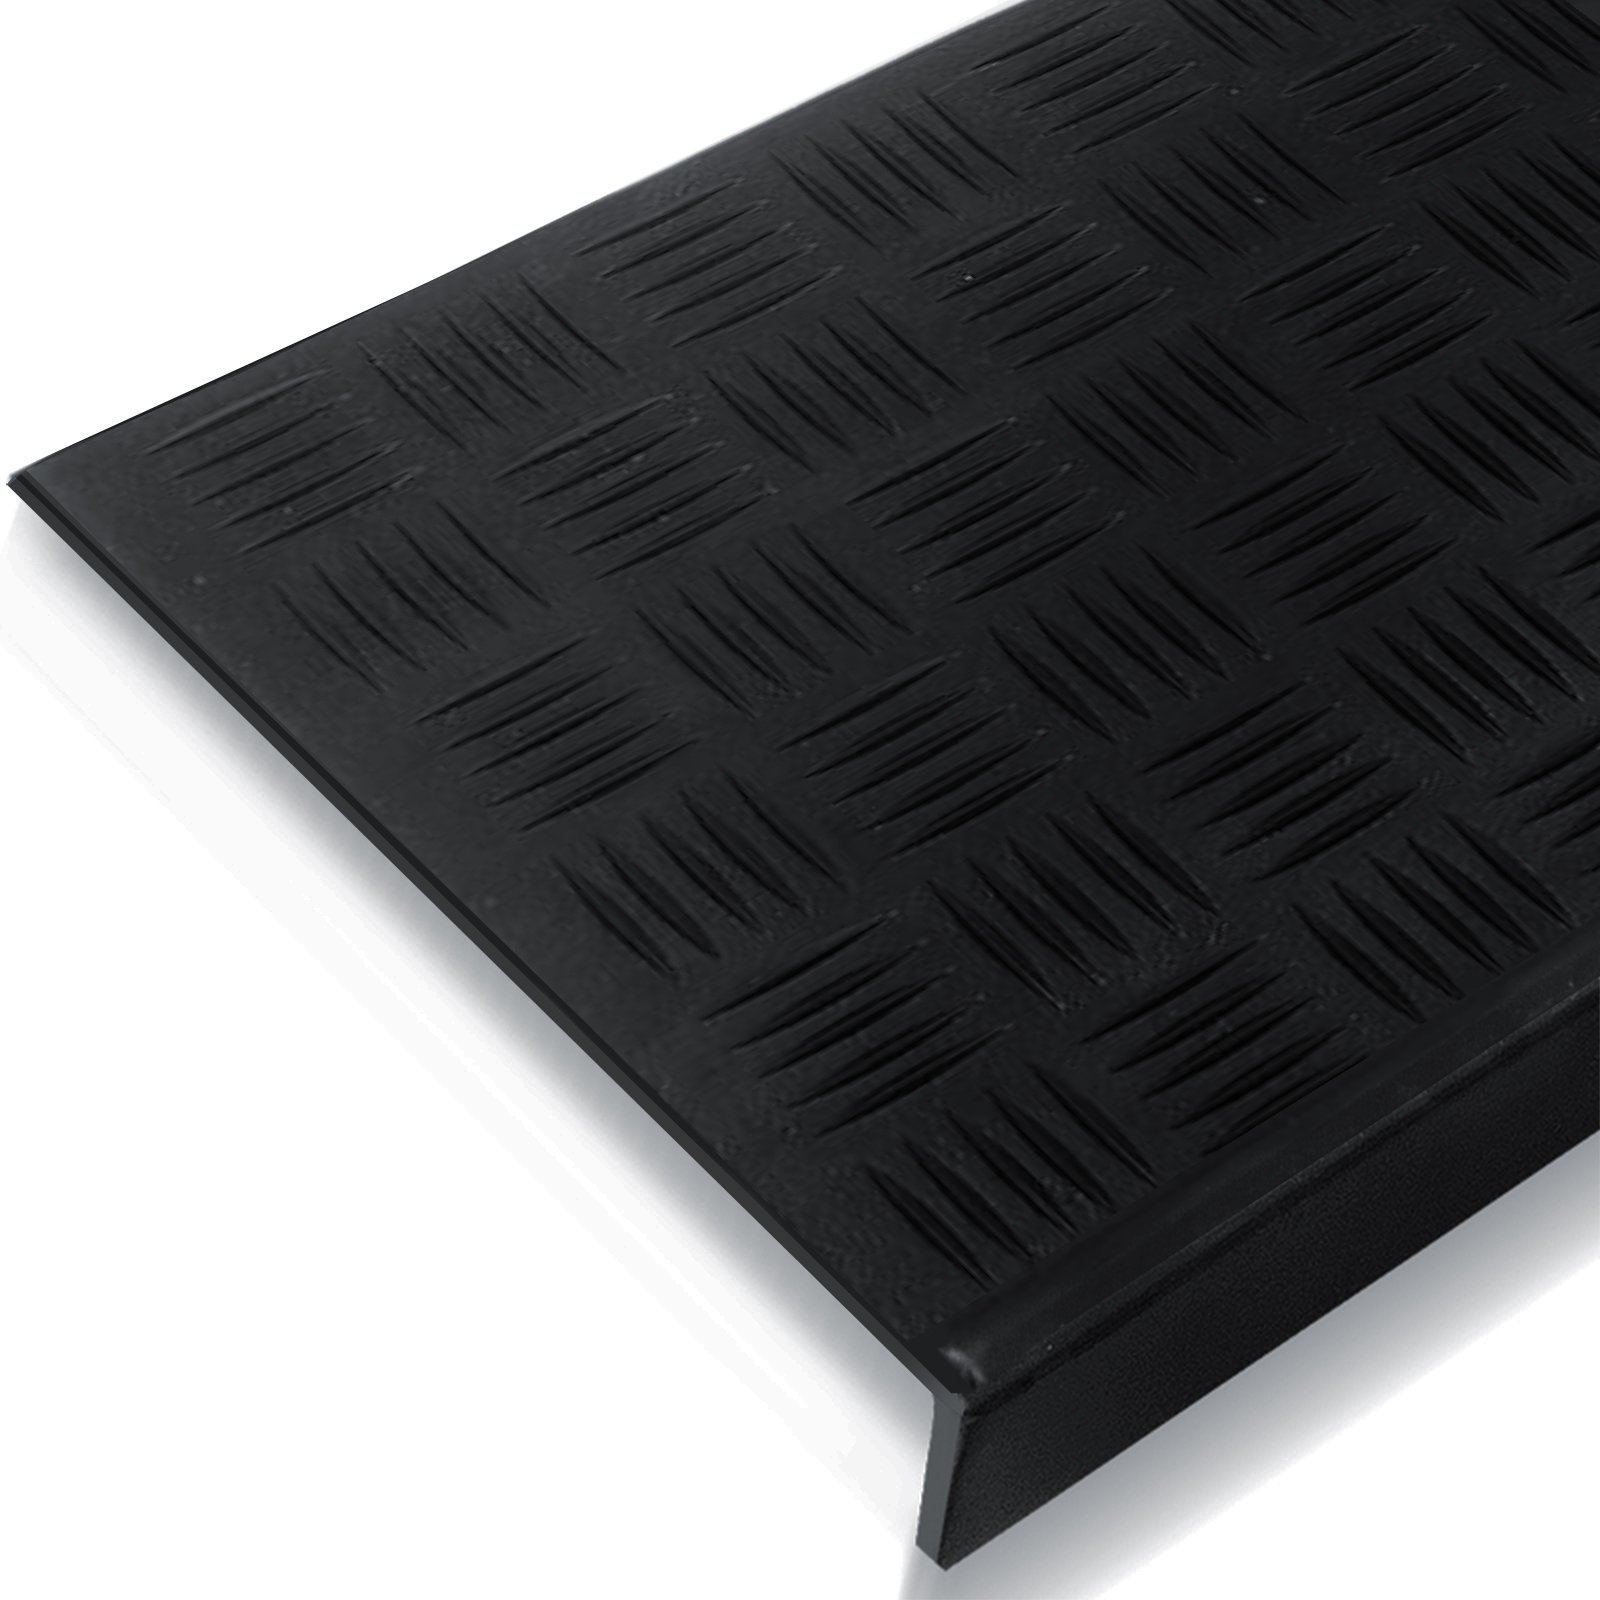 Indoor & Outdoor Bullnose Rubber Non-Slip Stair Treads, 30'' x 9'' - 0.3'' Thick | Set of 5 | Non-Slip and 100% Weatherproof - Madras